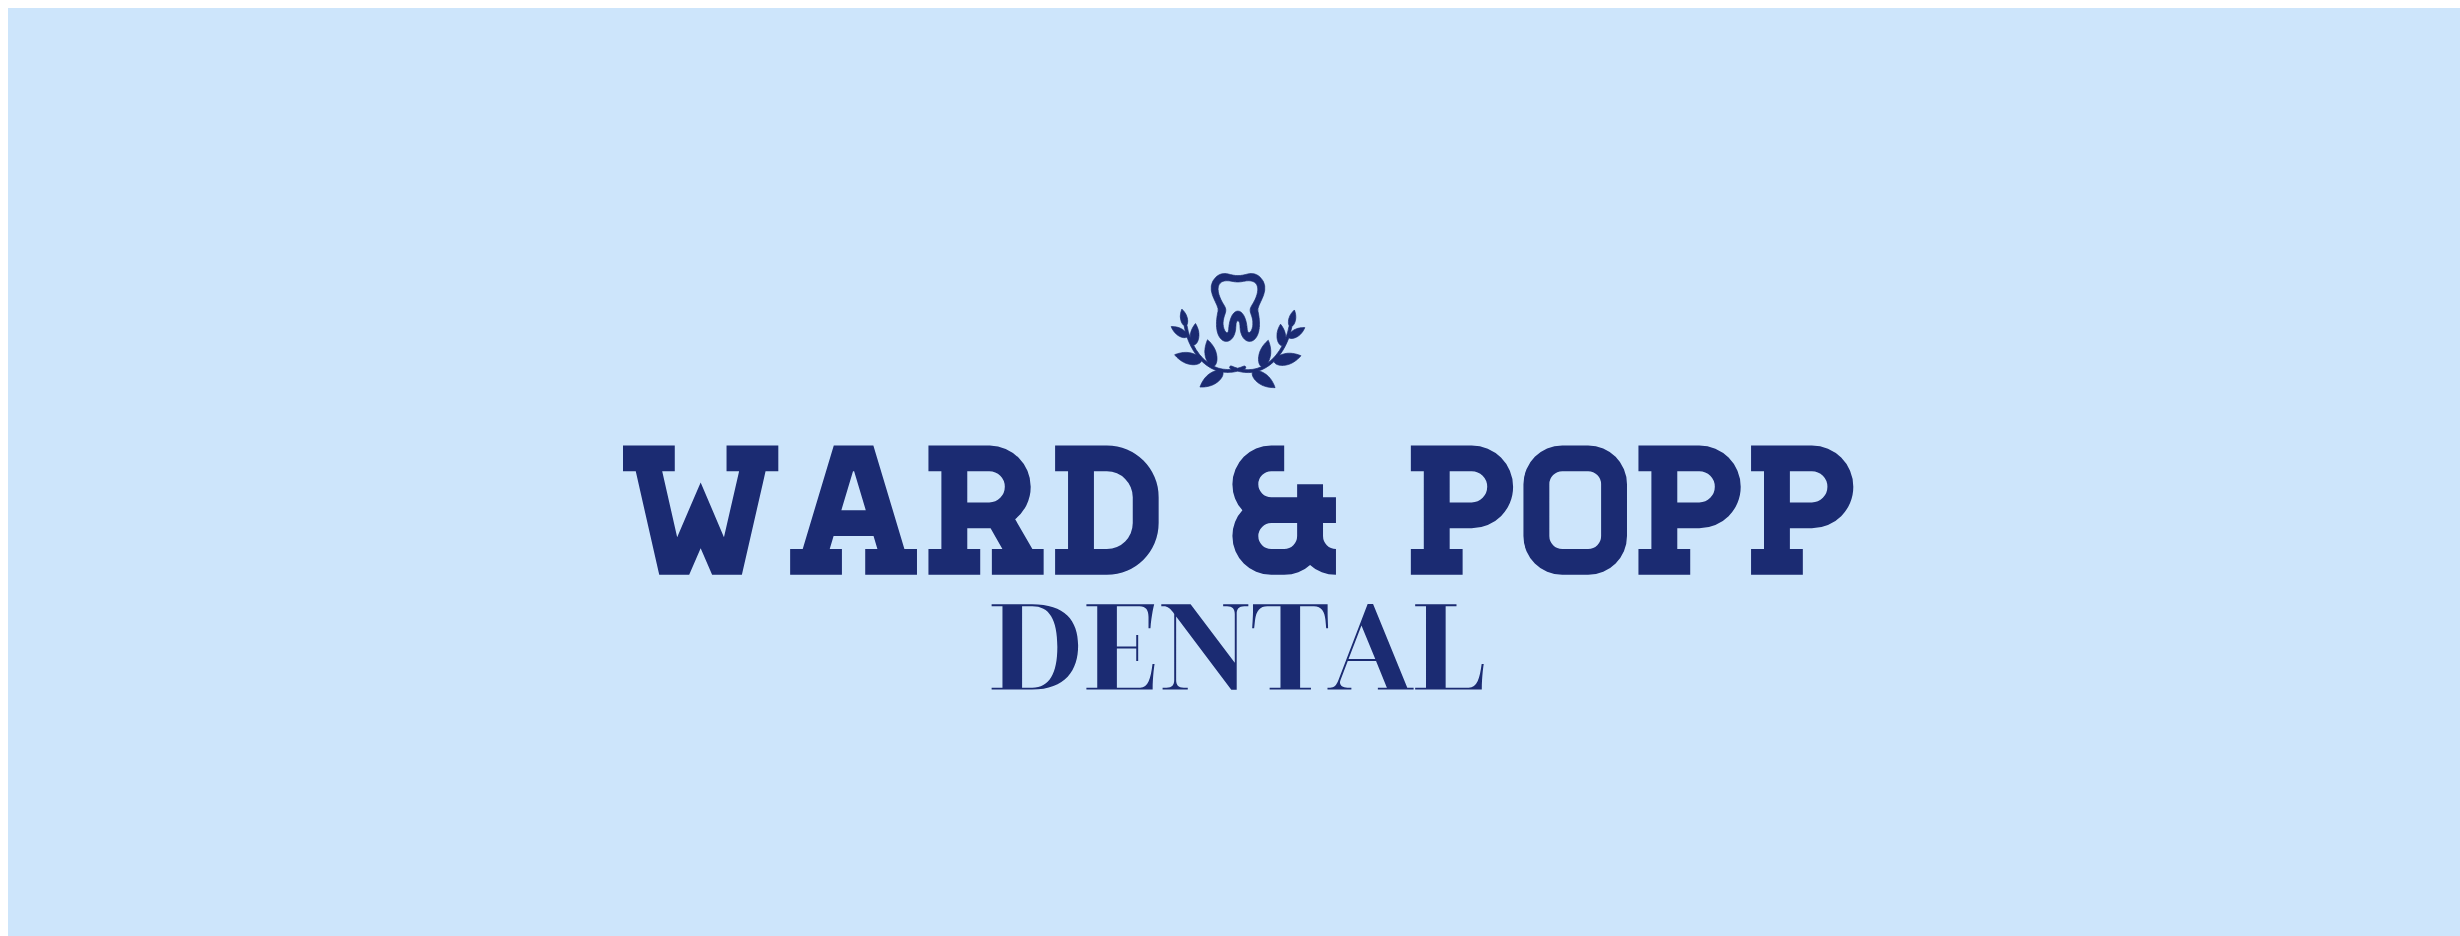 Ward and Popp Dental reviews | Dentists at 4843 Hixson Pike - Hixson TN